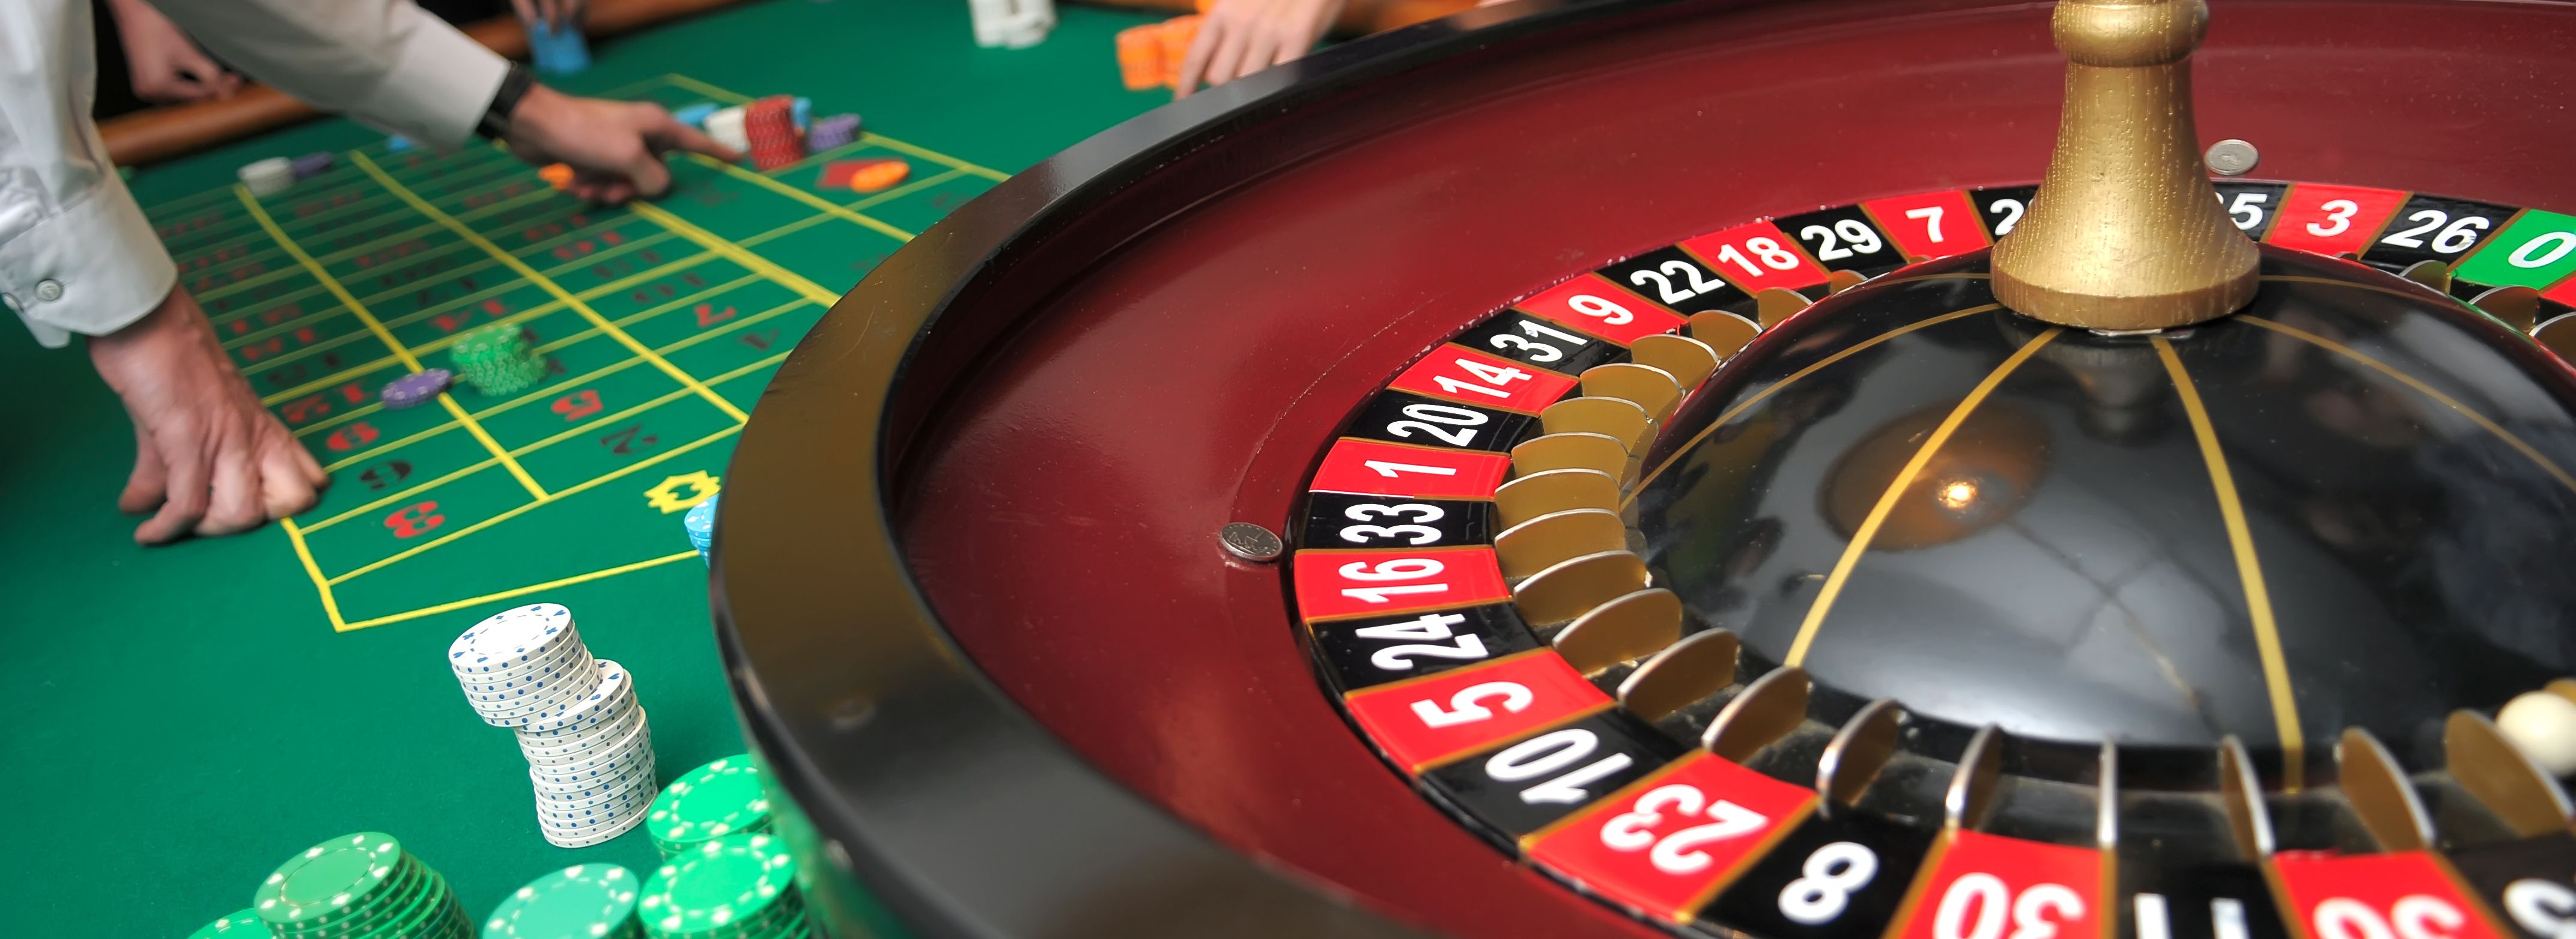 article 42 live casinos vs land based How we rate online casinos in order to make things easier for player when it comes to choosing an online casino and making sure whether it is reliable, we've developed a set of criteria that allows us to rate and rank online casinos.